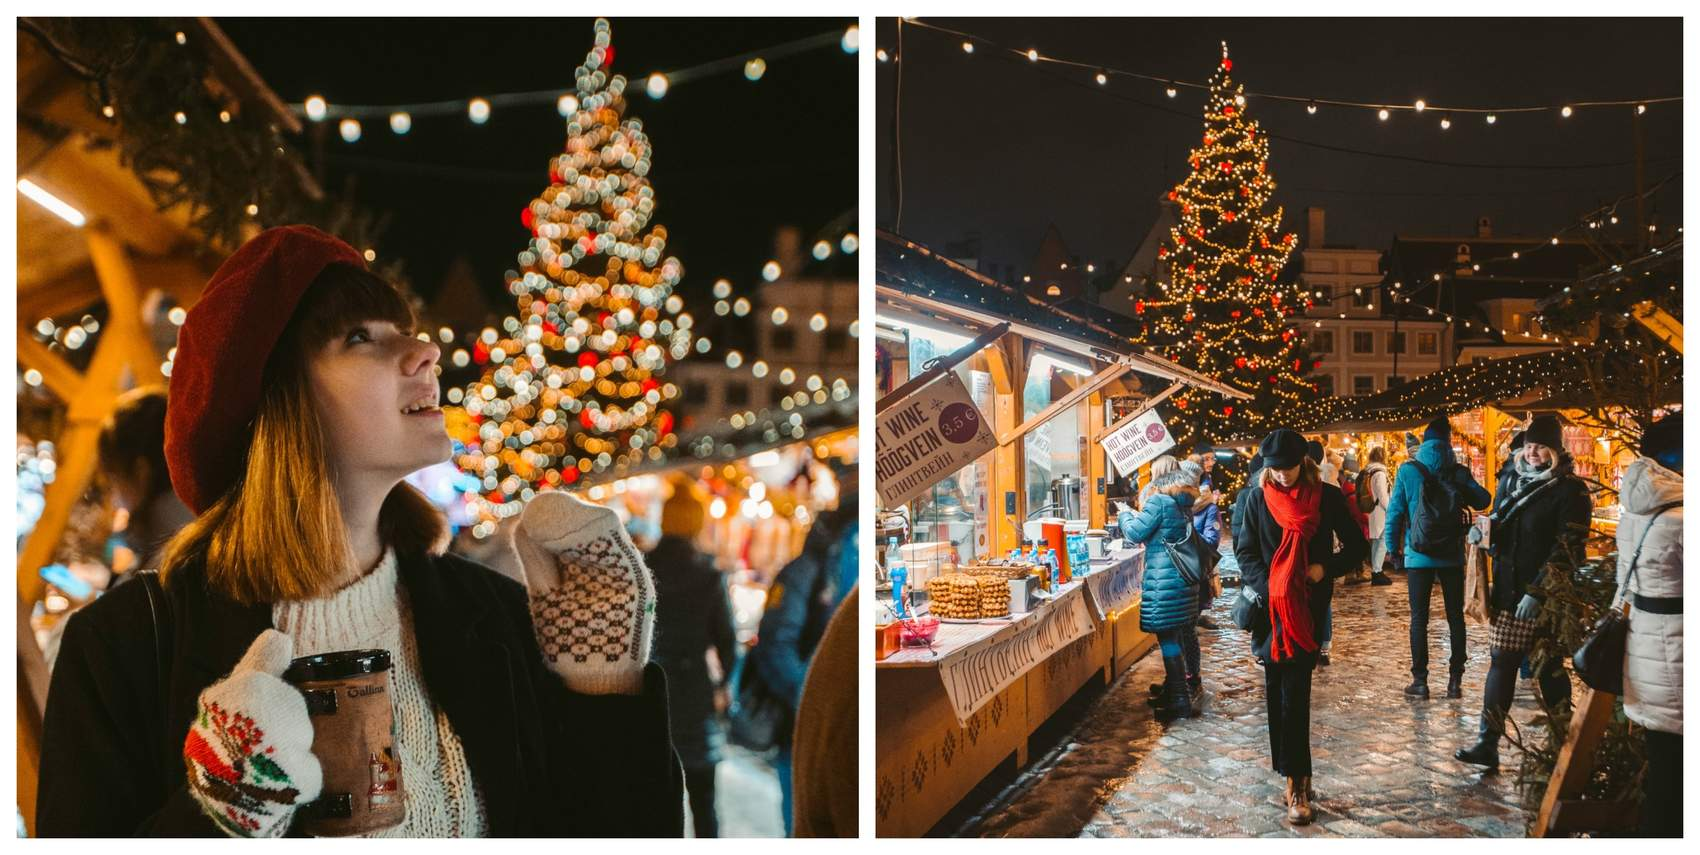 Girl at the Chrismas Market on th Town Hall Square in Tallinn, Estonia Photo: Simon Snopek